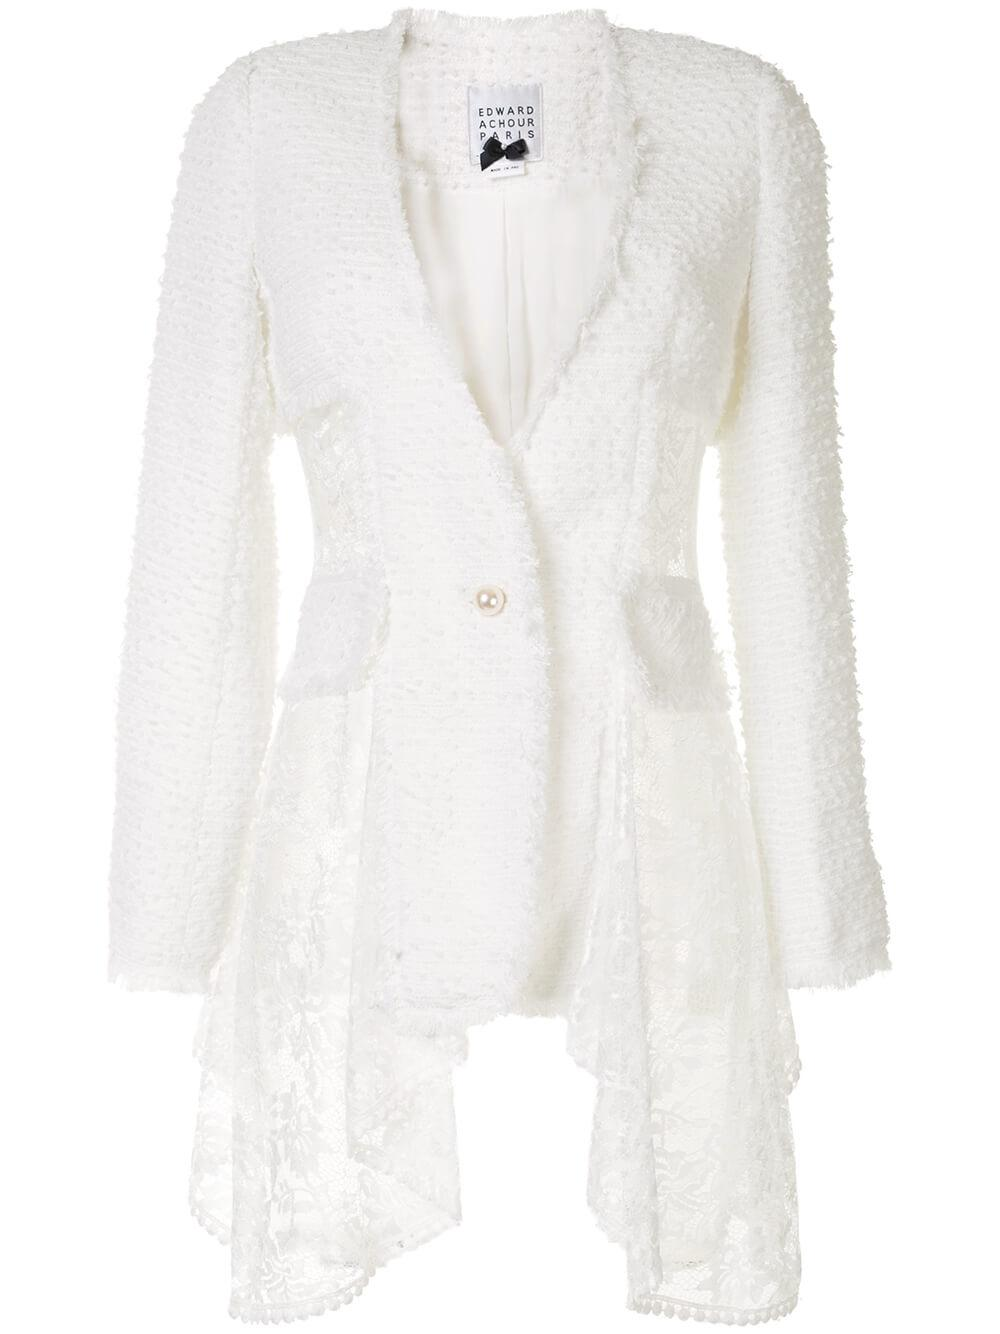 Single Button Jacket With Lace Detailing Item # 0609D-W360